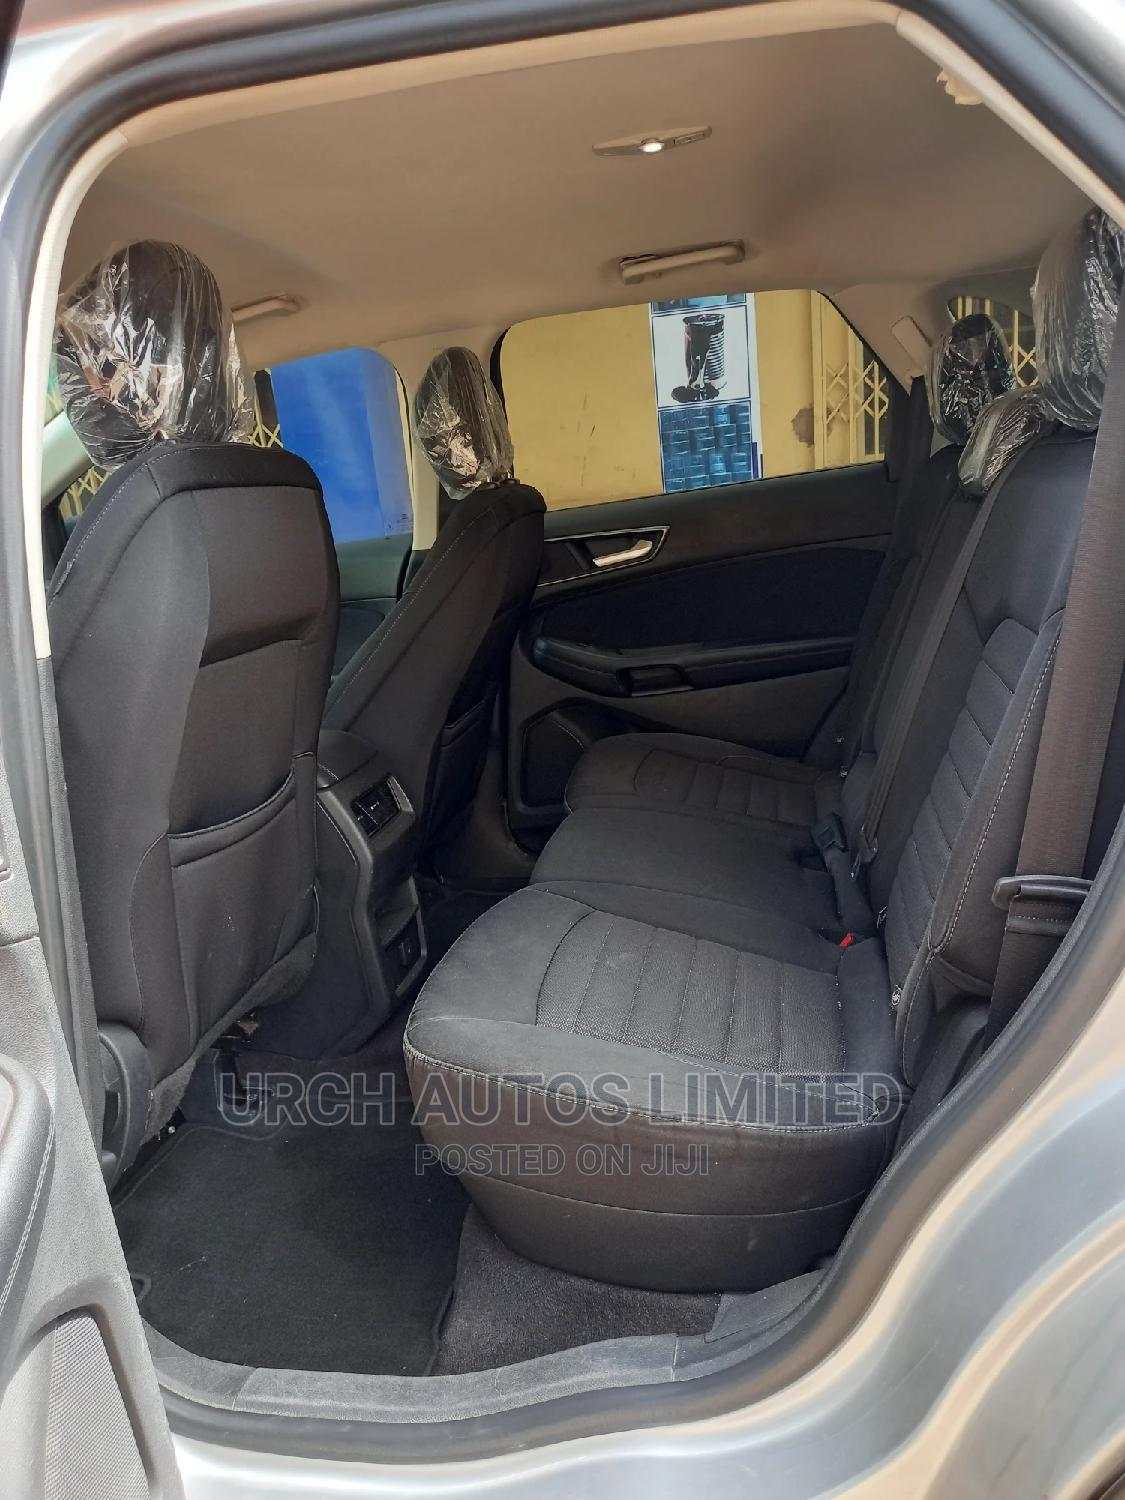 Ford Edge 2016 SE 4dr FWD (2.0L 4cyl 6A) Silver   Cars for sale in Katampe, Abuja (FCT) State, Nigeria